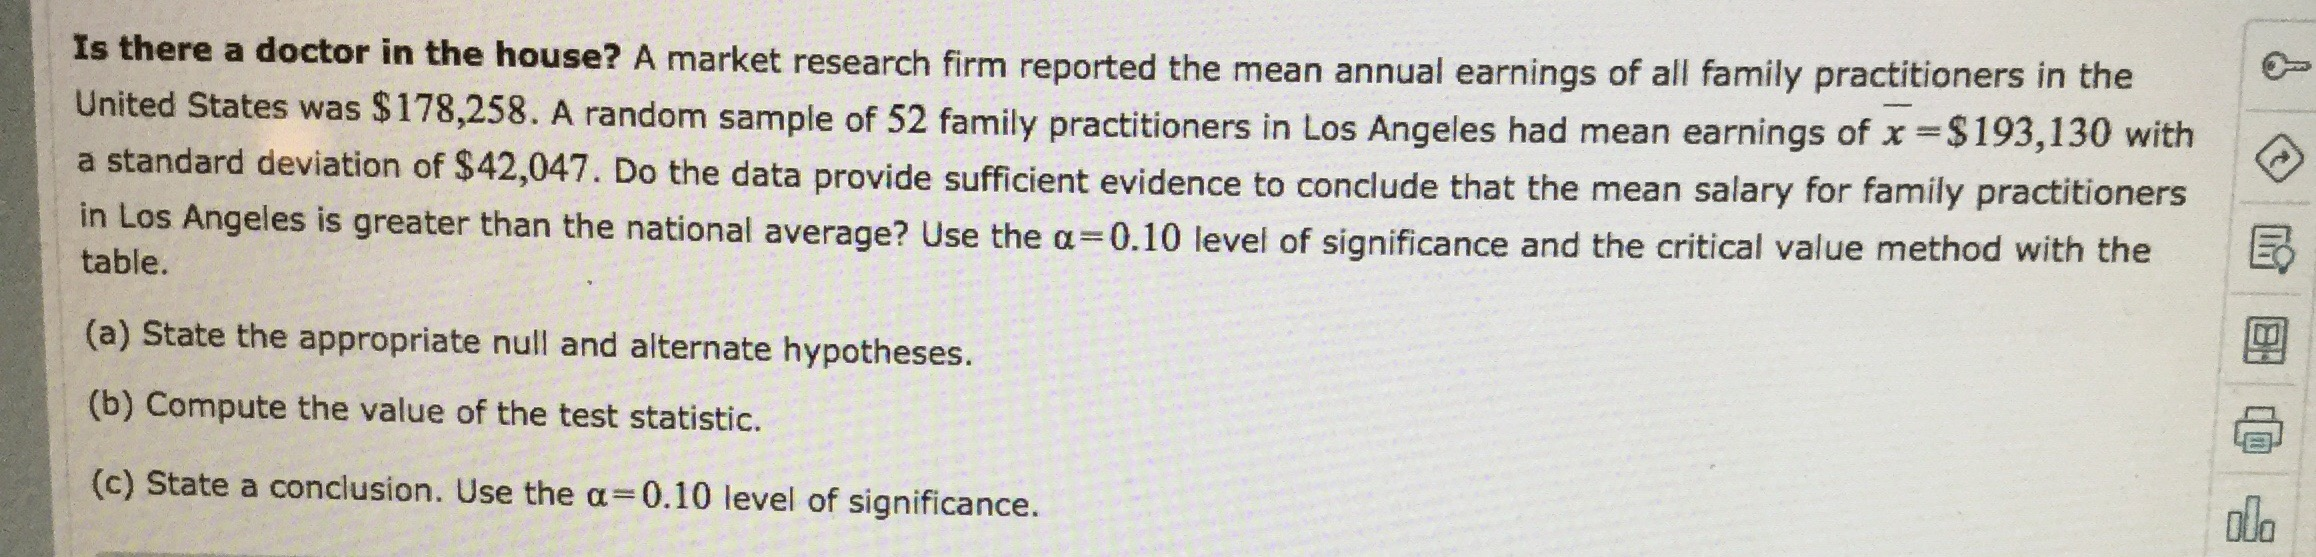 Is there a doctor in the house? A market research firm reported the mean annual earnings of all family practitioners in the United States was $178,258. A random sample of 52 family practitioners in Los Angeles had mean earnings of x$193,130 with a standard deviation of $42,047. Do the data provide sufficient evidence to conclude that the mean salary for family practitioners in Los Angeles is greater than the national average? Use the a 0.10 level of significance and the critical value method with the table. (a) State the appropriate null and alternate hypotheses. (b) Compute the value of the test statistic. ola (c) State a conclusion. Use the a = 0.10 level of significance.